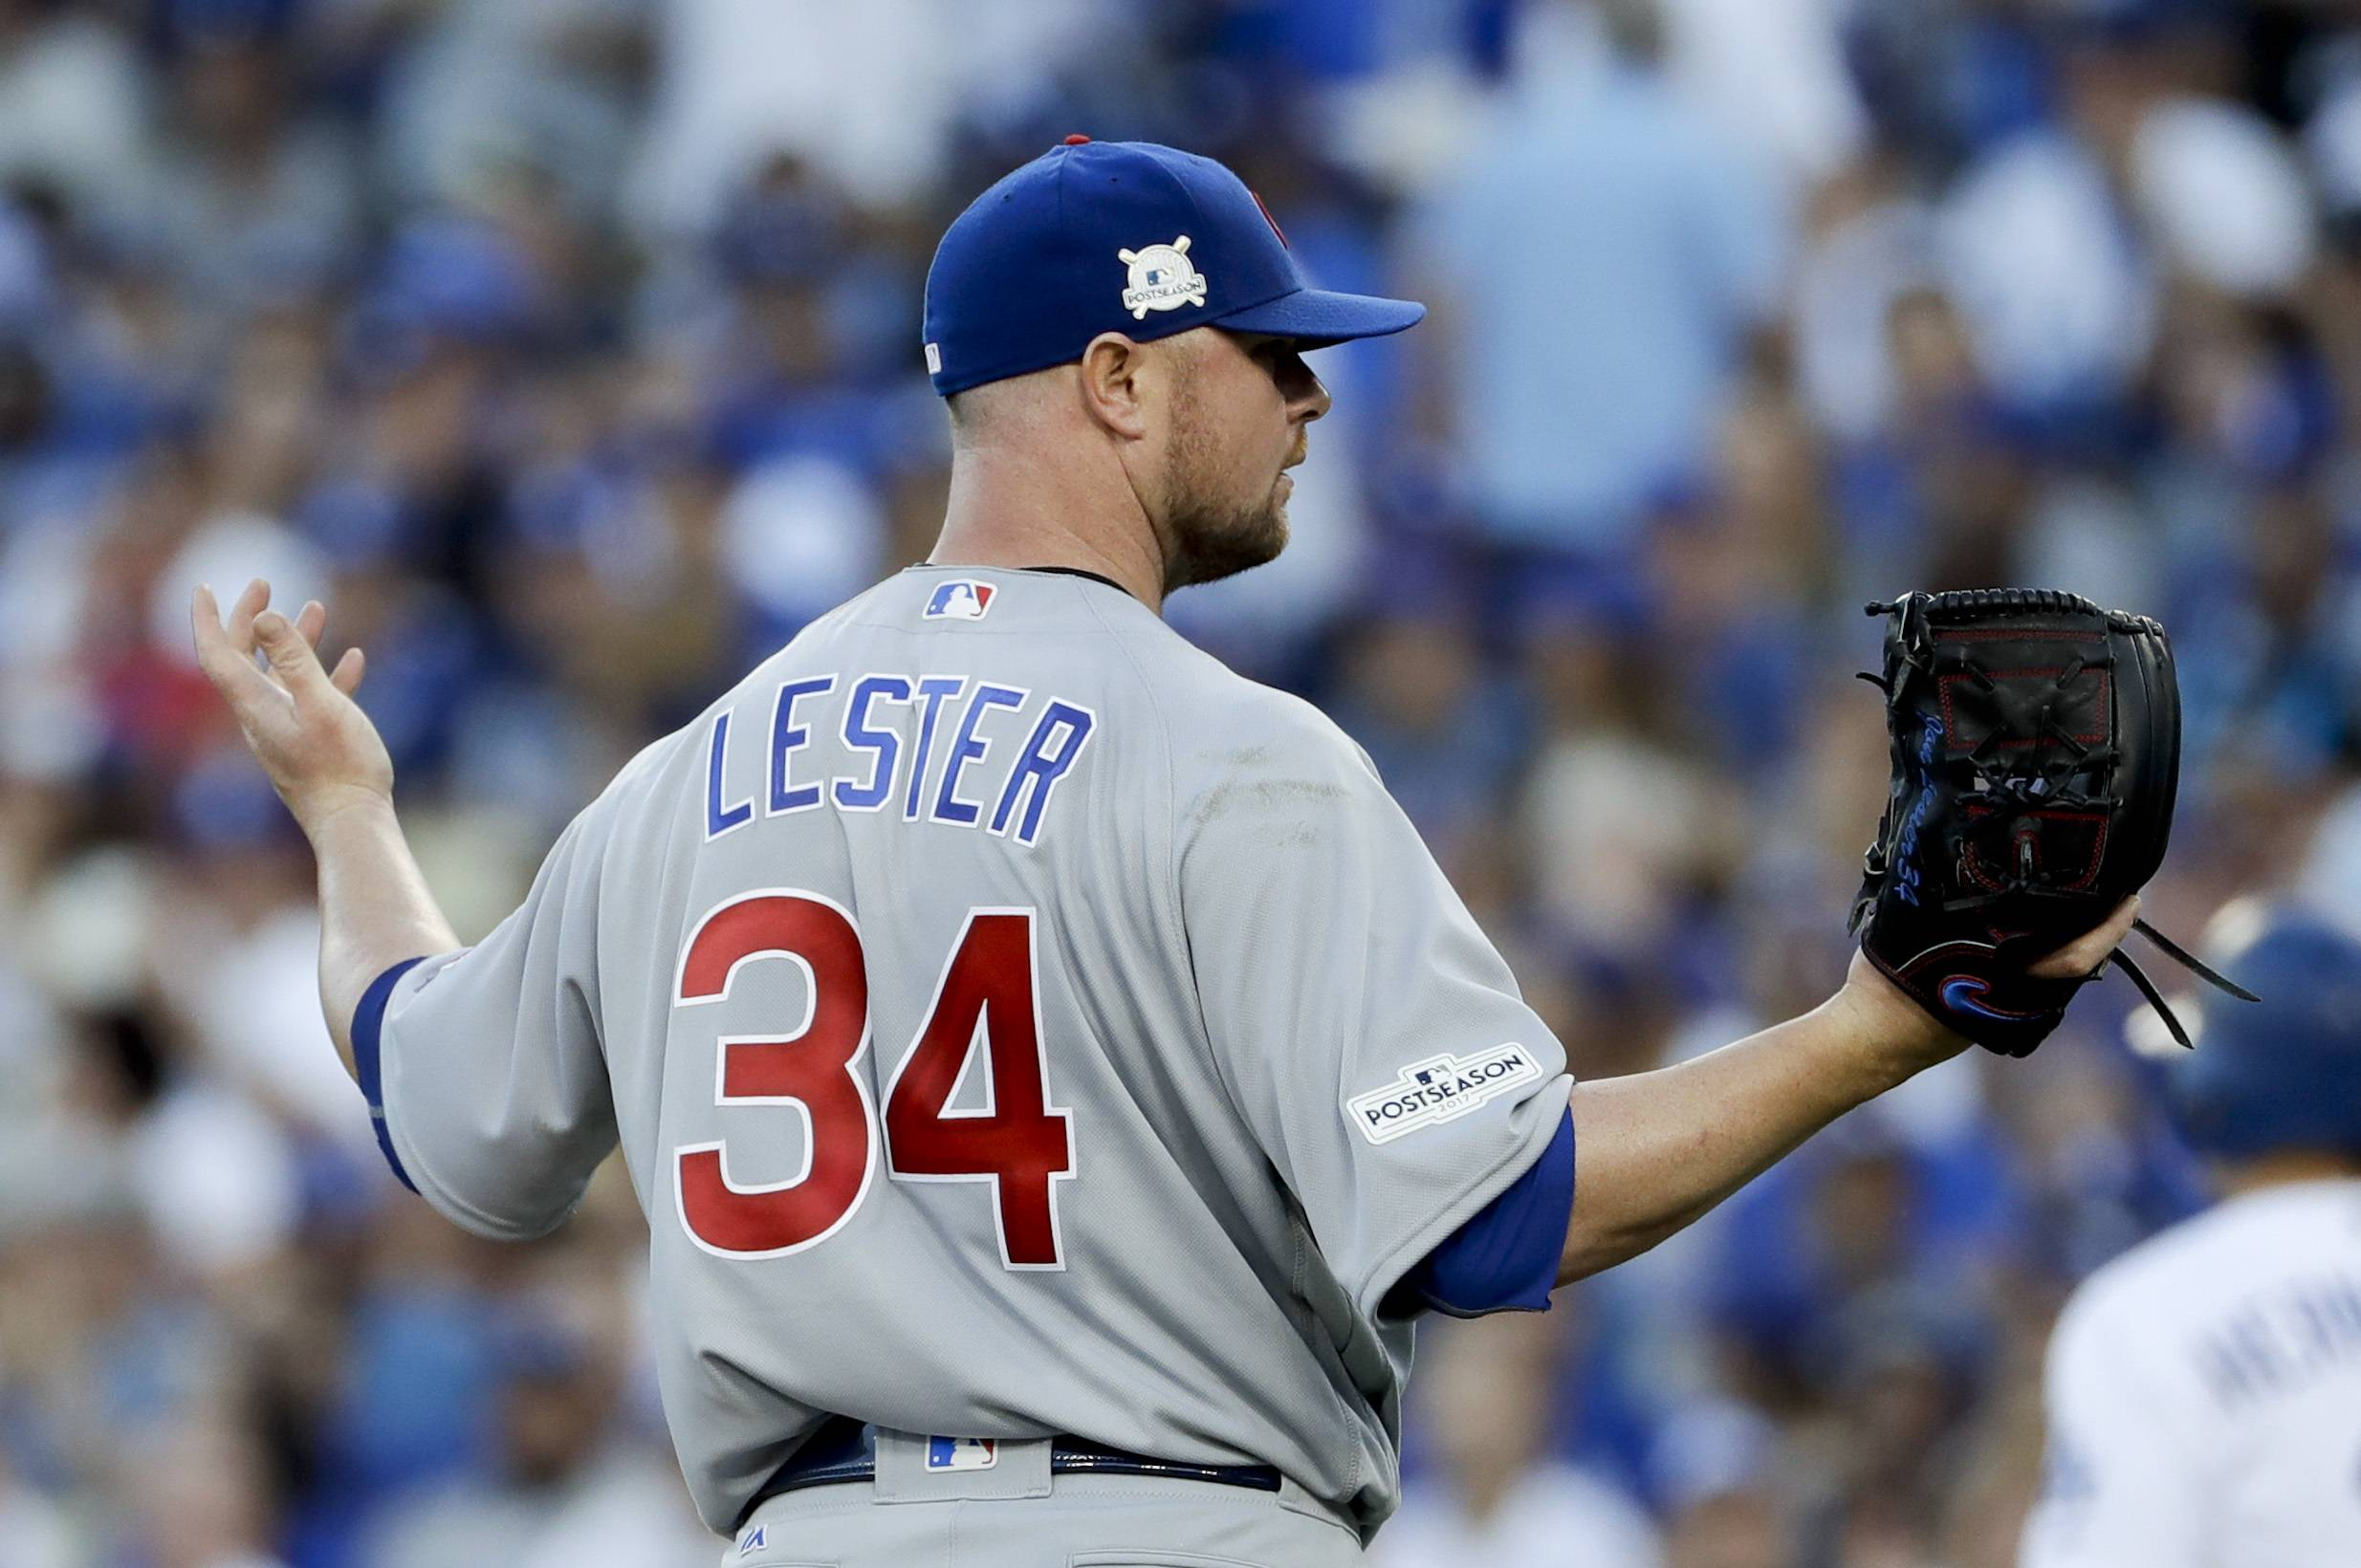 Chicago Cubs starting pitcher Jon Lester reacts after walking Los Angeles Dodgers' Enrique Hernandez during the third inning of Game 2 of baseball's National League Championship Series in Los Angeles, Sunday, Oct. 15, 2017. (AP Photo/Matt Slocum)